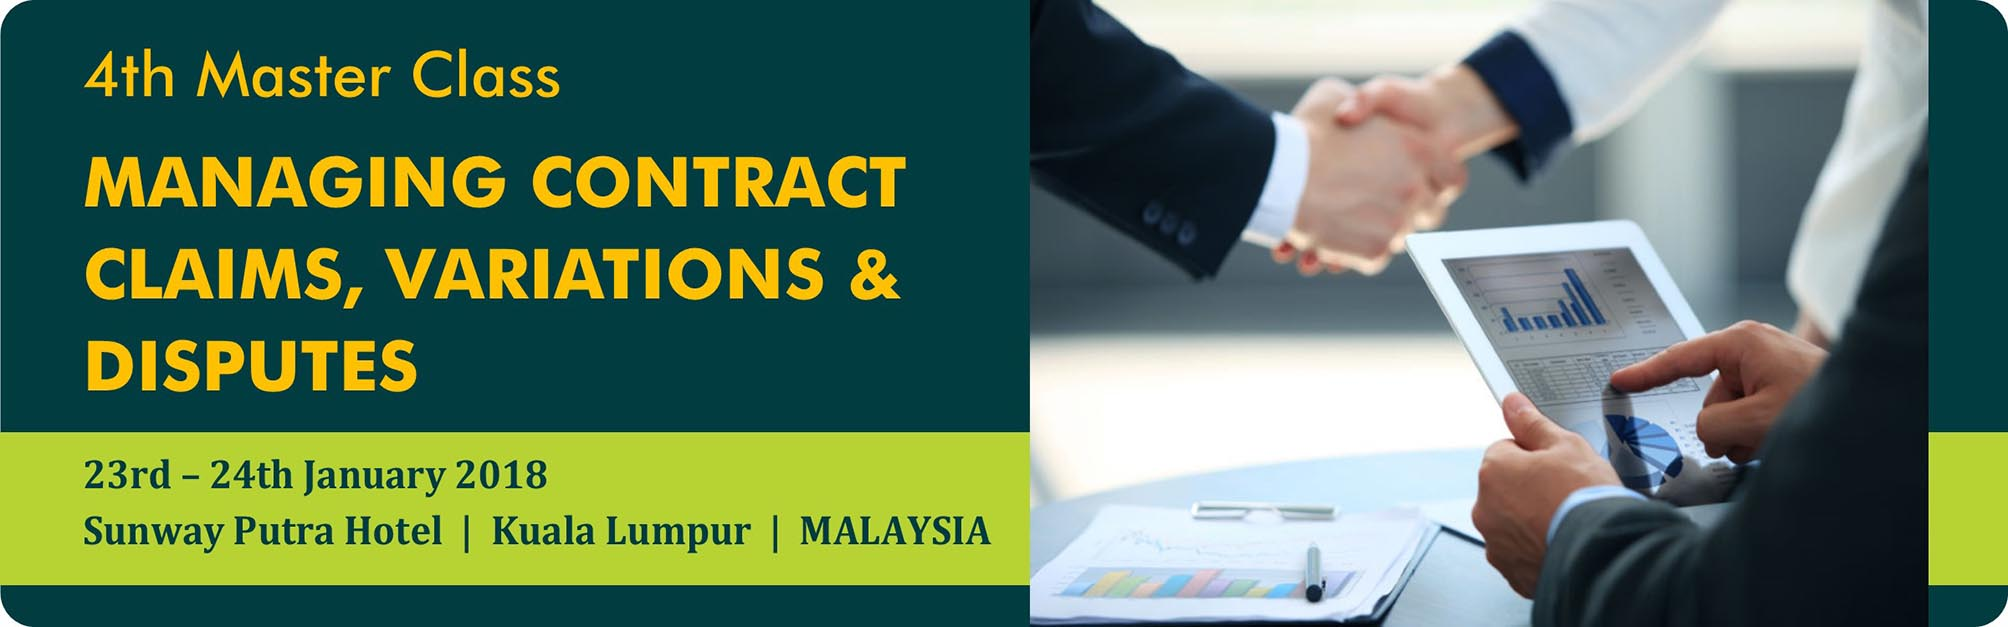 Header Managing Contract Jan 2018 Sunway